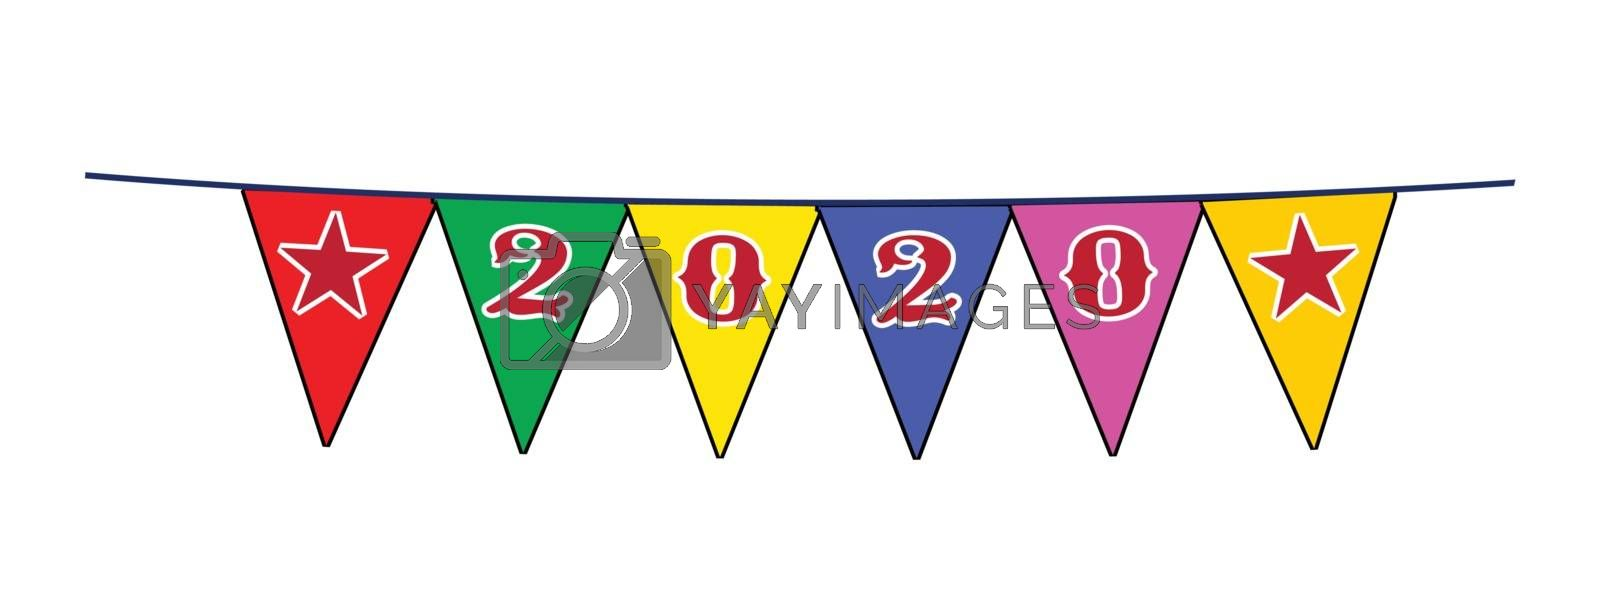 The text 2020s as a line of bunting on a white background